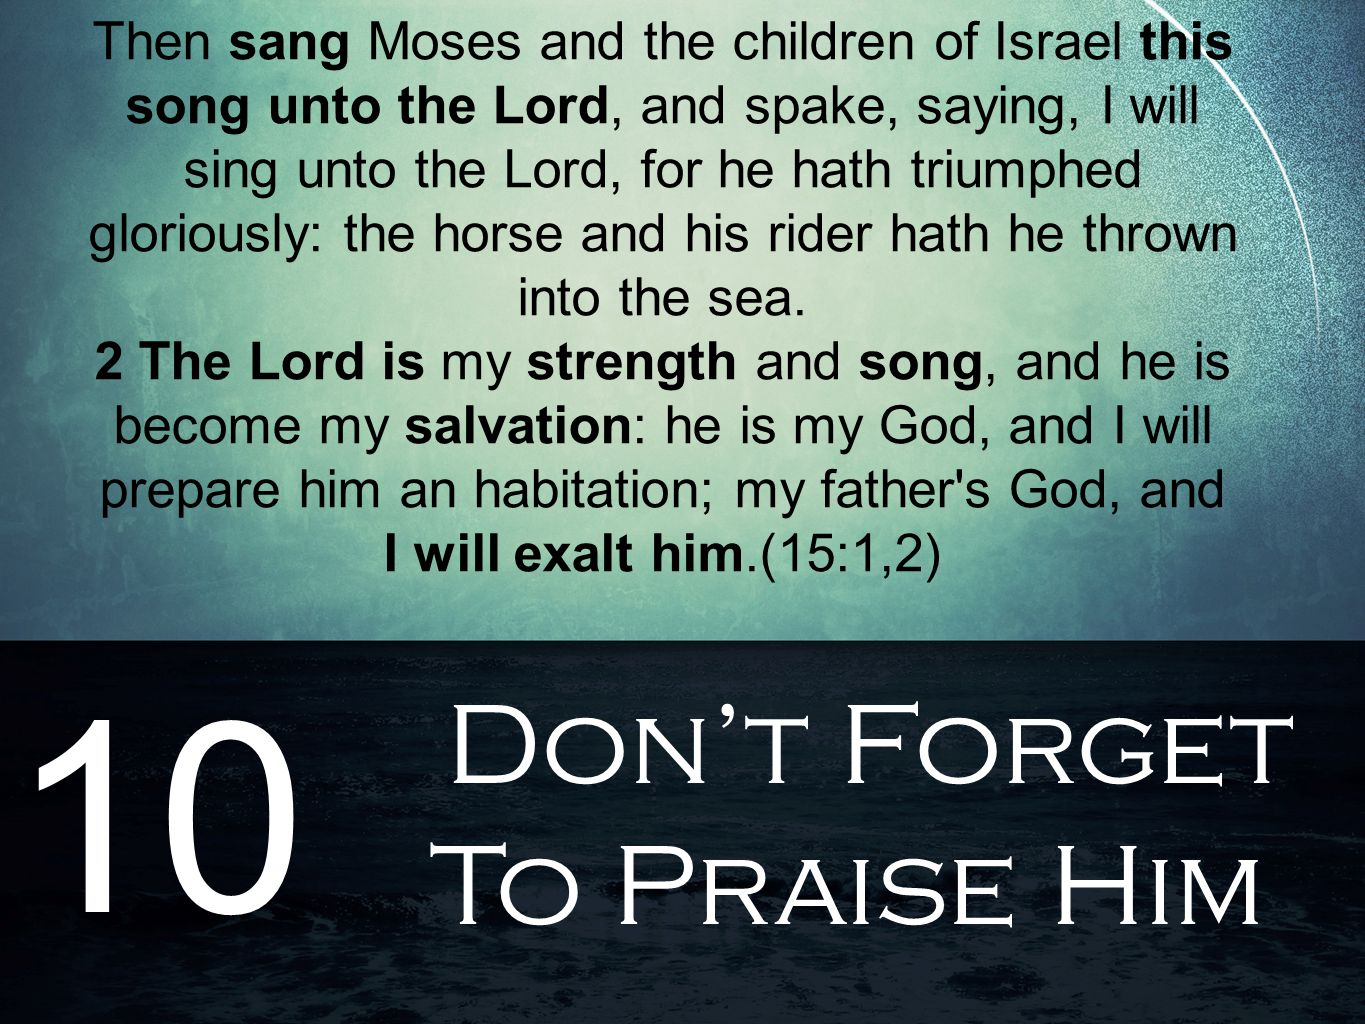 Don't Forget To Praise Him 10 Then sang Moses and the children of Israel this song unto the Lord, and spake, saying, I will sing unto the Lord, for he